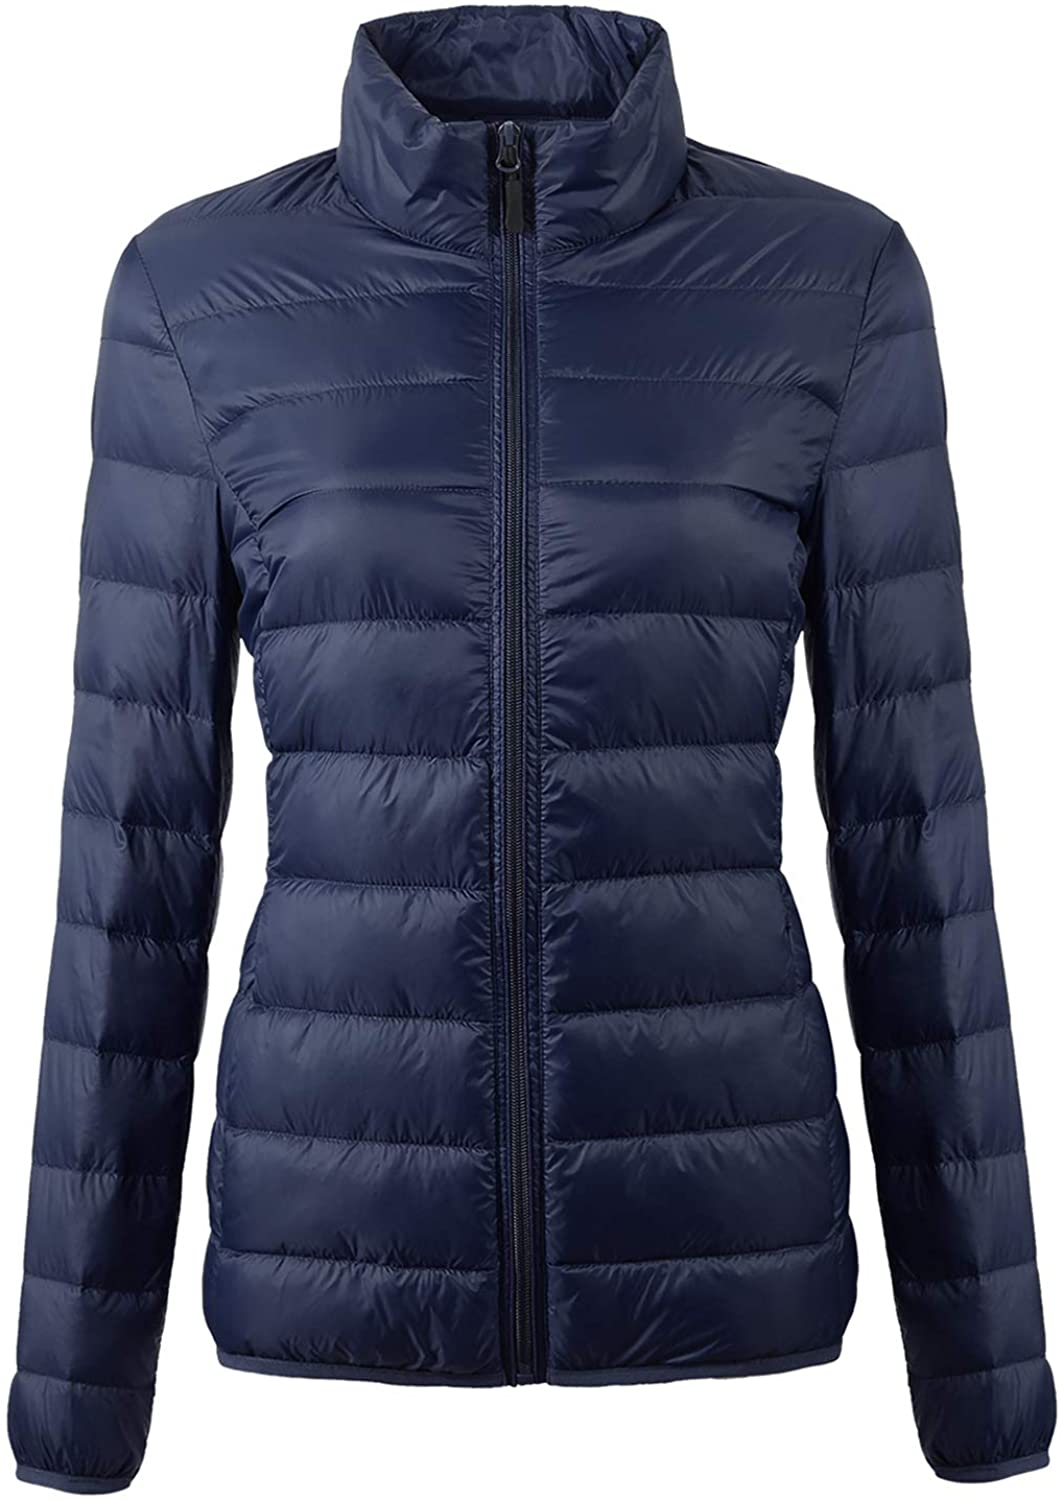 EQUICK Womens Packable Puffer Down Jacket Ultra Light Weight Short Coat with Travel Bag U219WYRF027,Navy,S